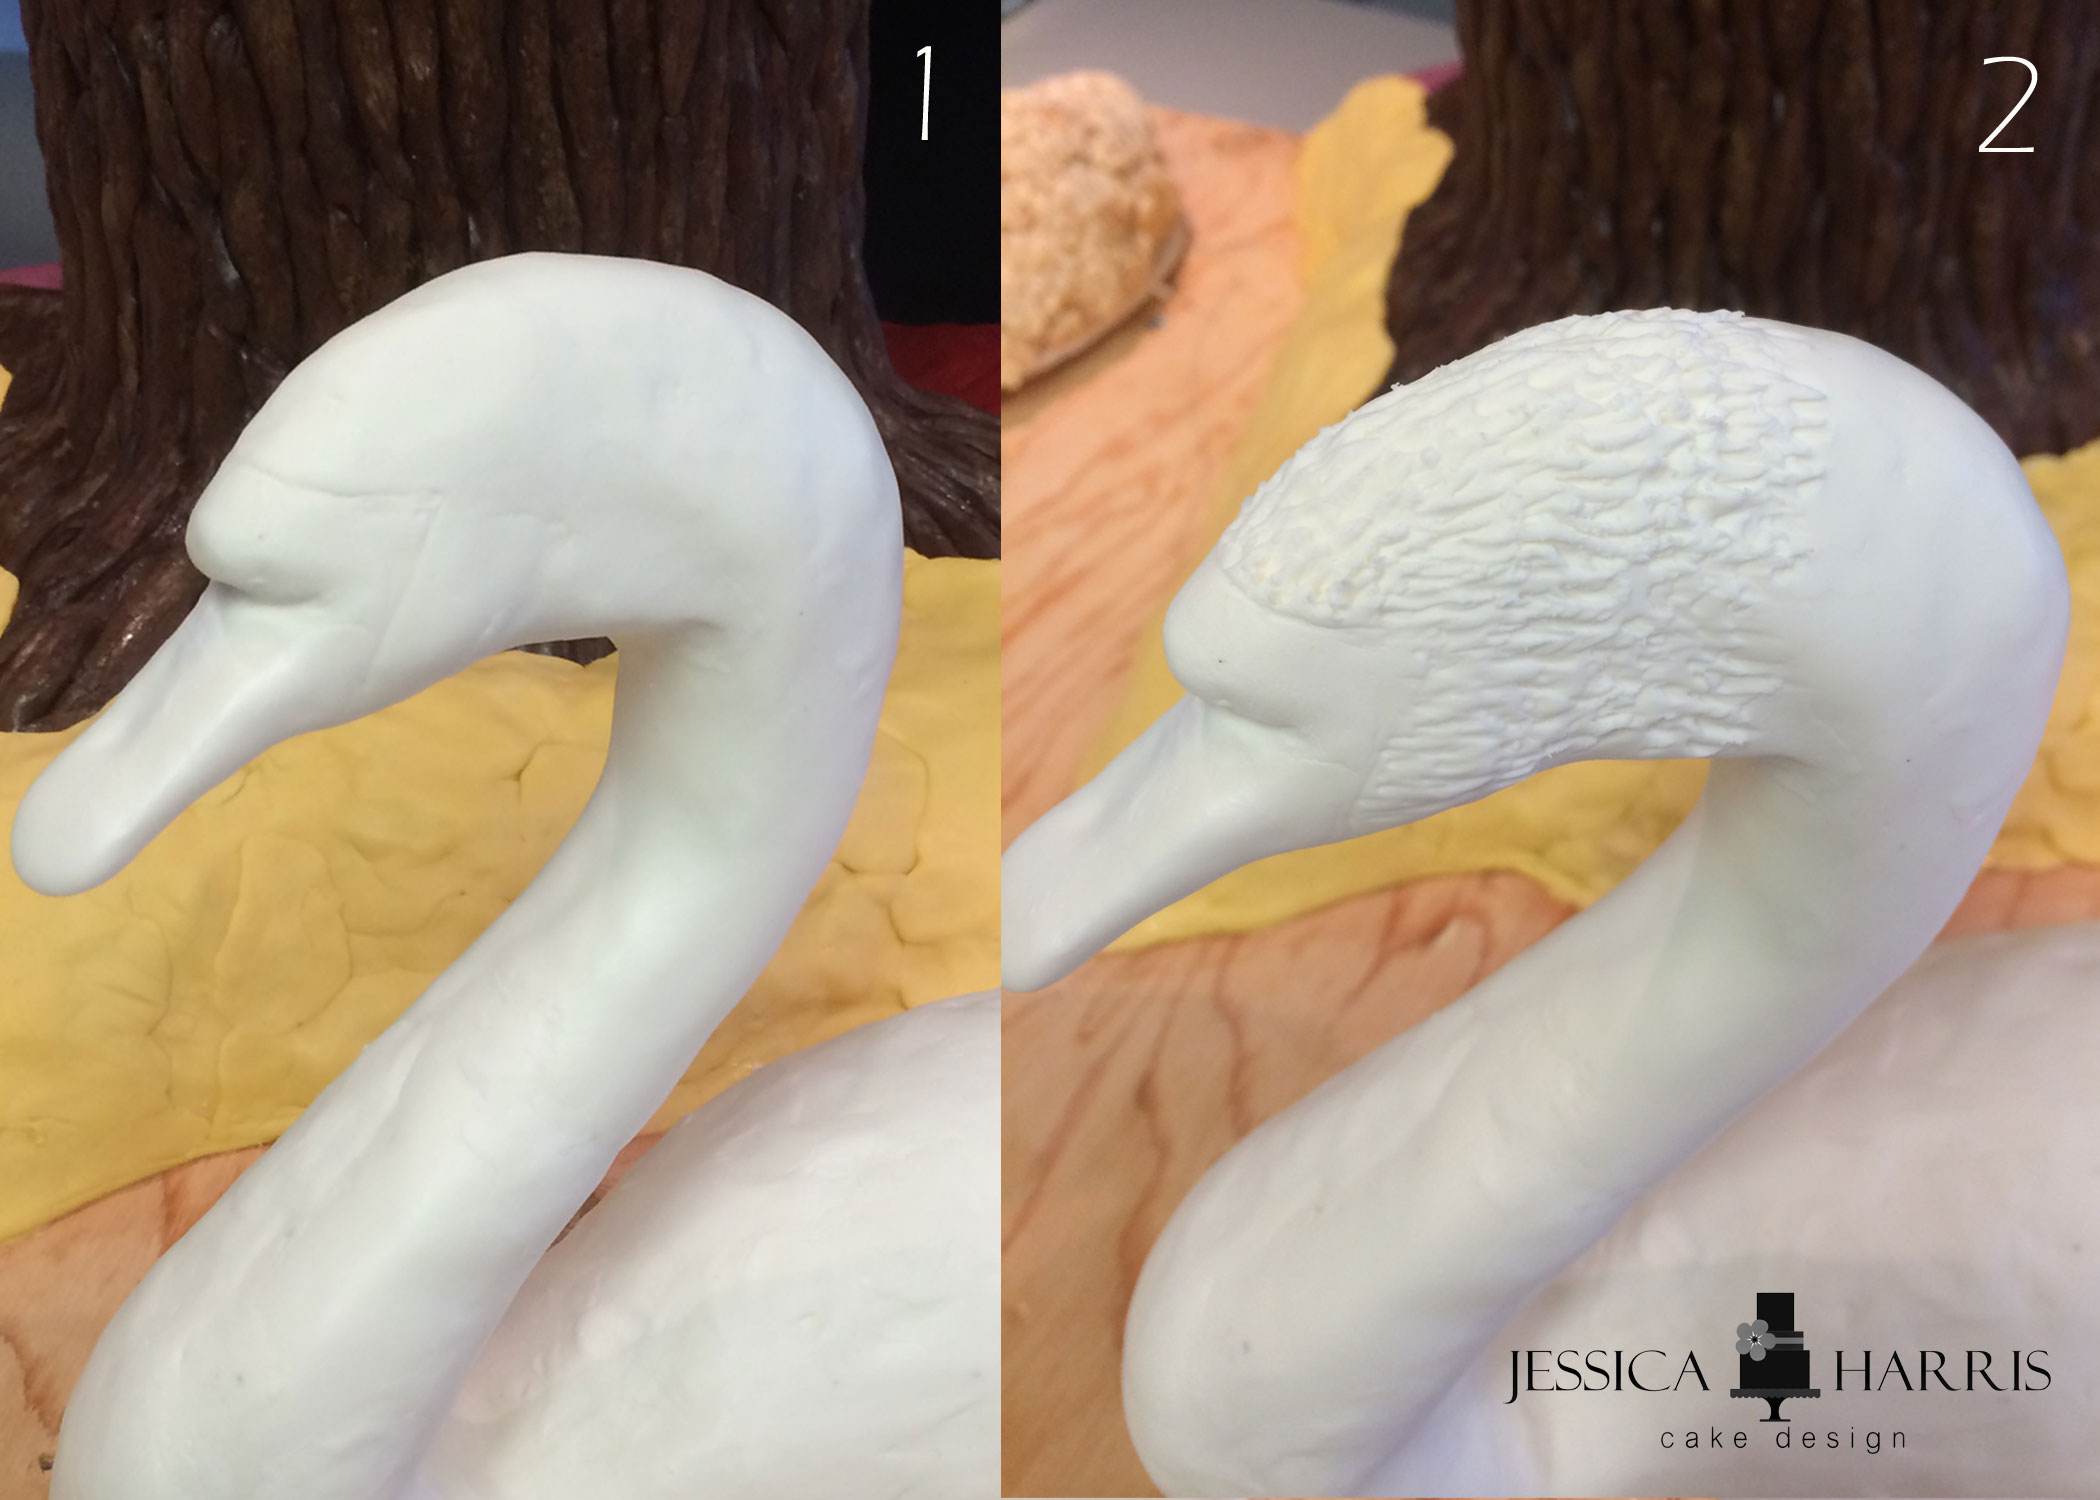 How to make fondant feathers youtube - Before I Started The Texture I Took A Veining Fondant Tool And Drew Out Where The Black Head Eyes Beak Would Be Going This Helped Me Know Where To Start